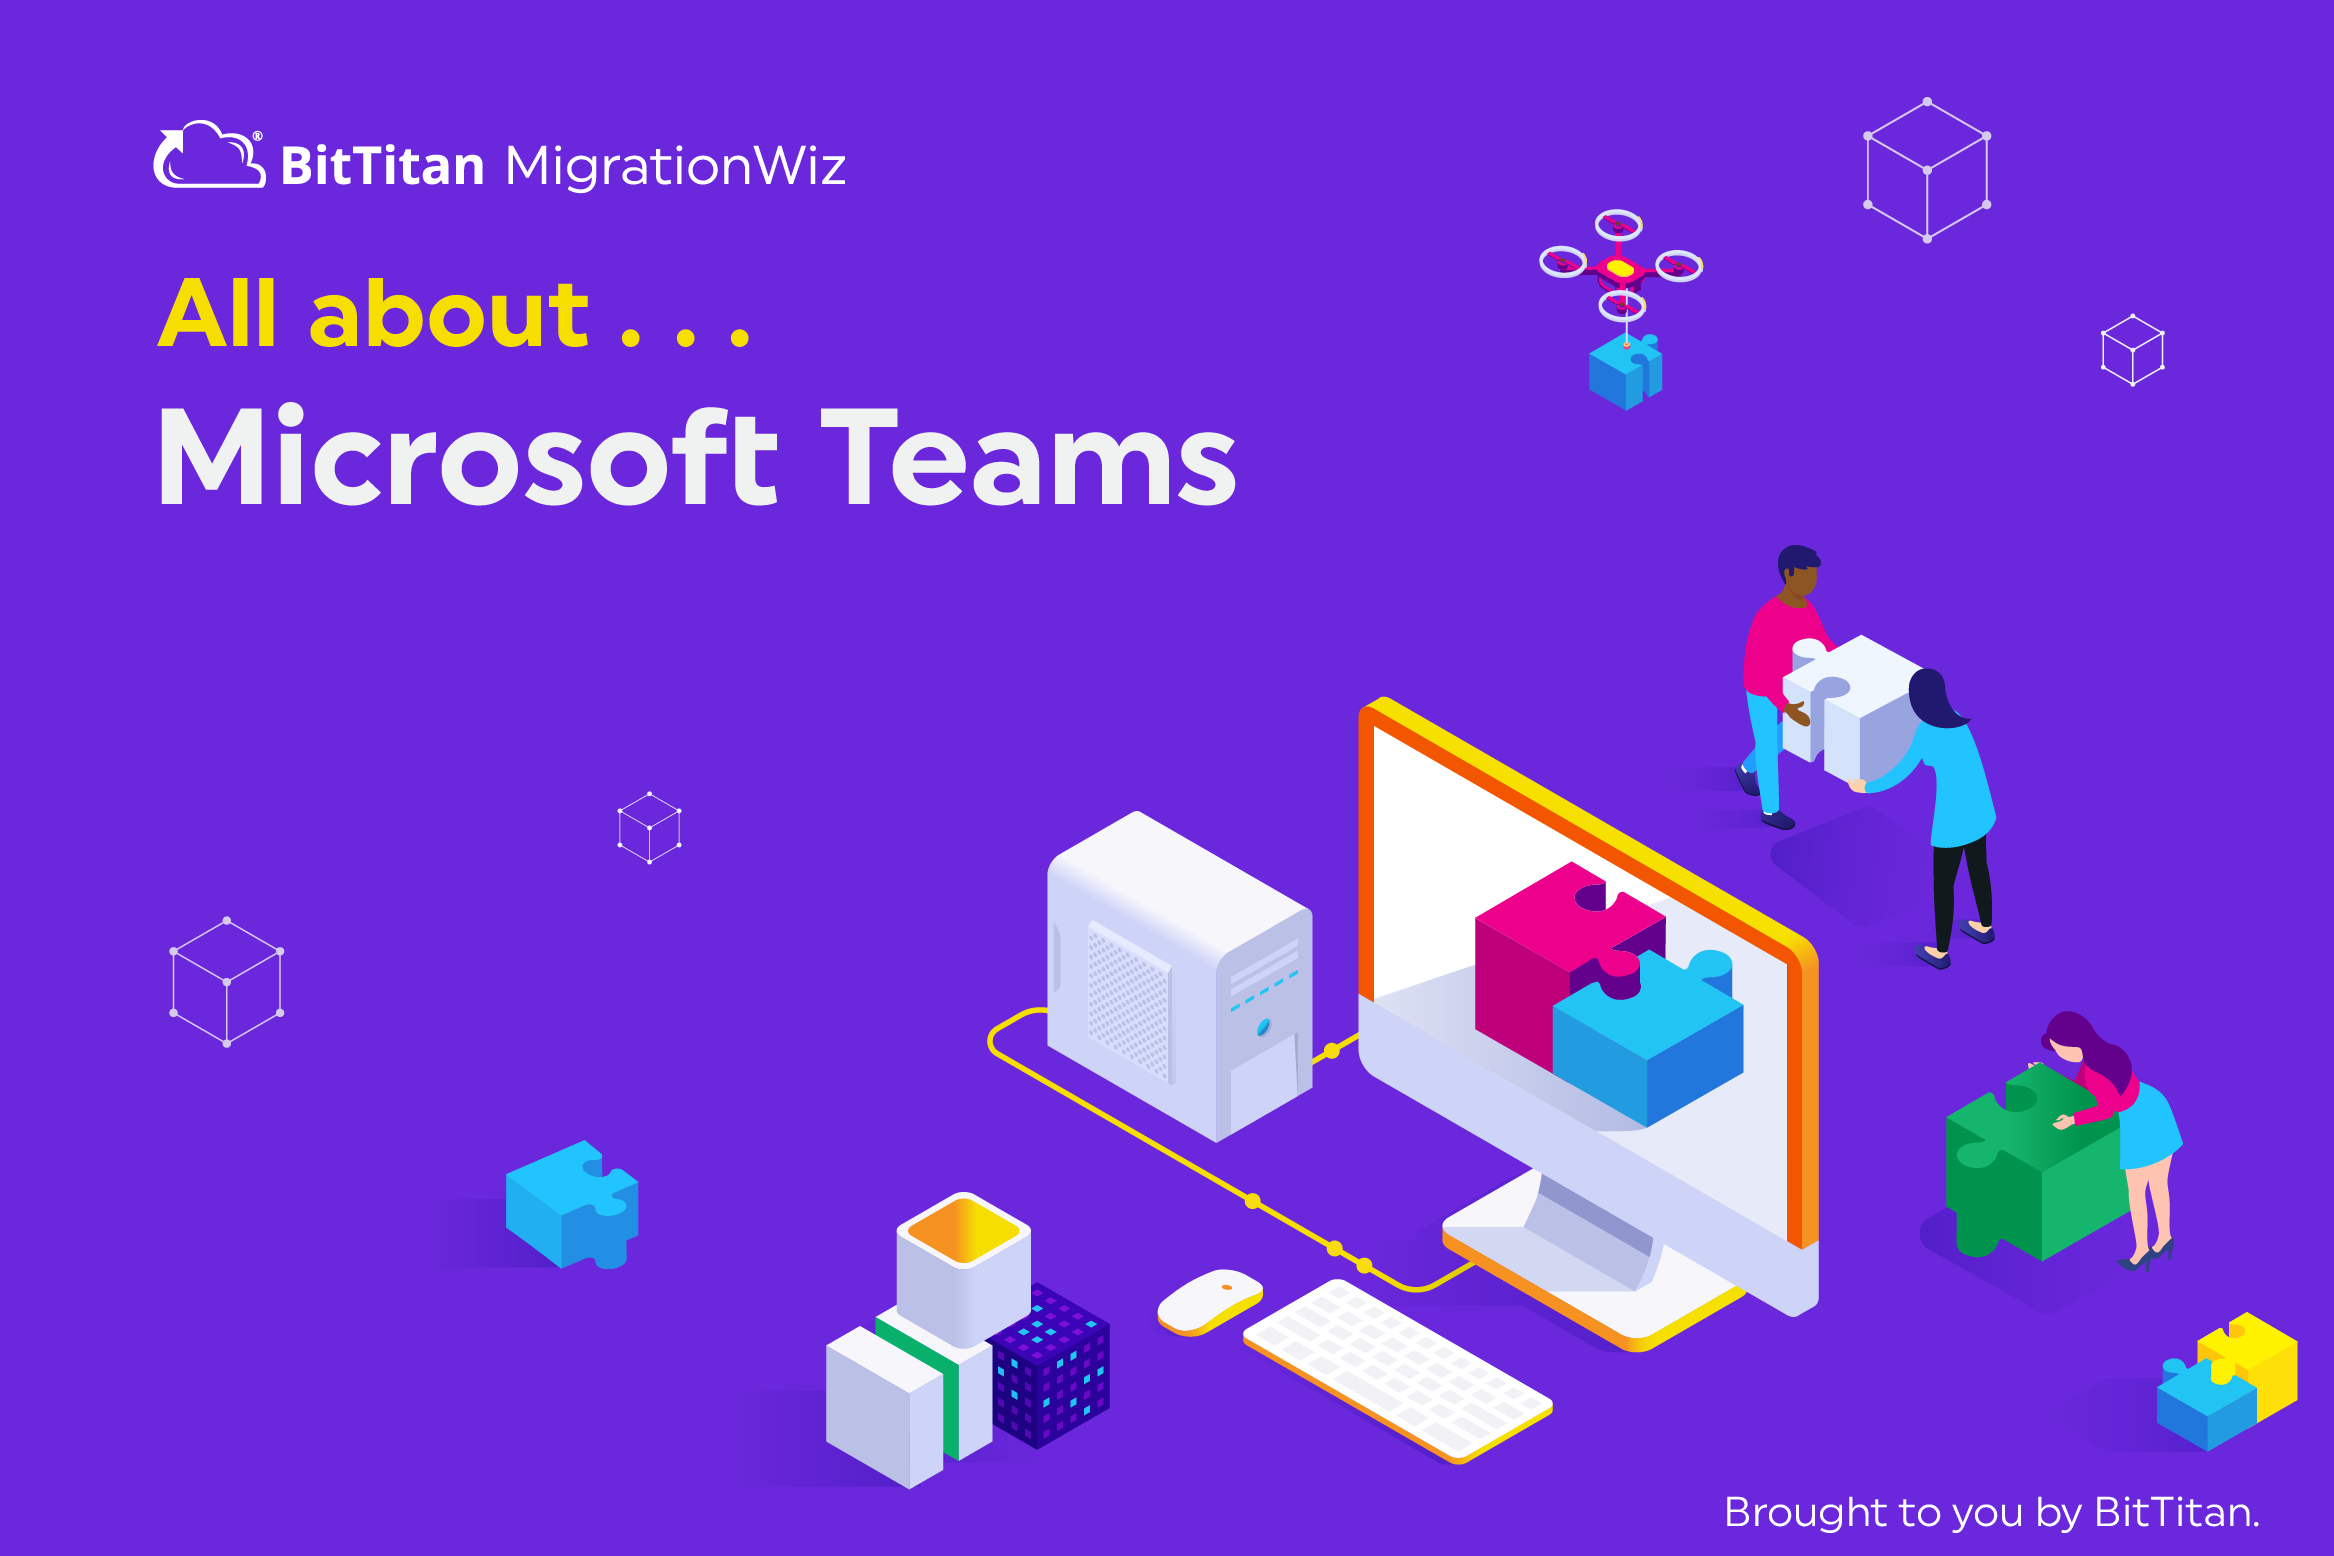 Microsoft Teams Migration for Managed Service Providers (MSPs)